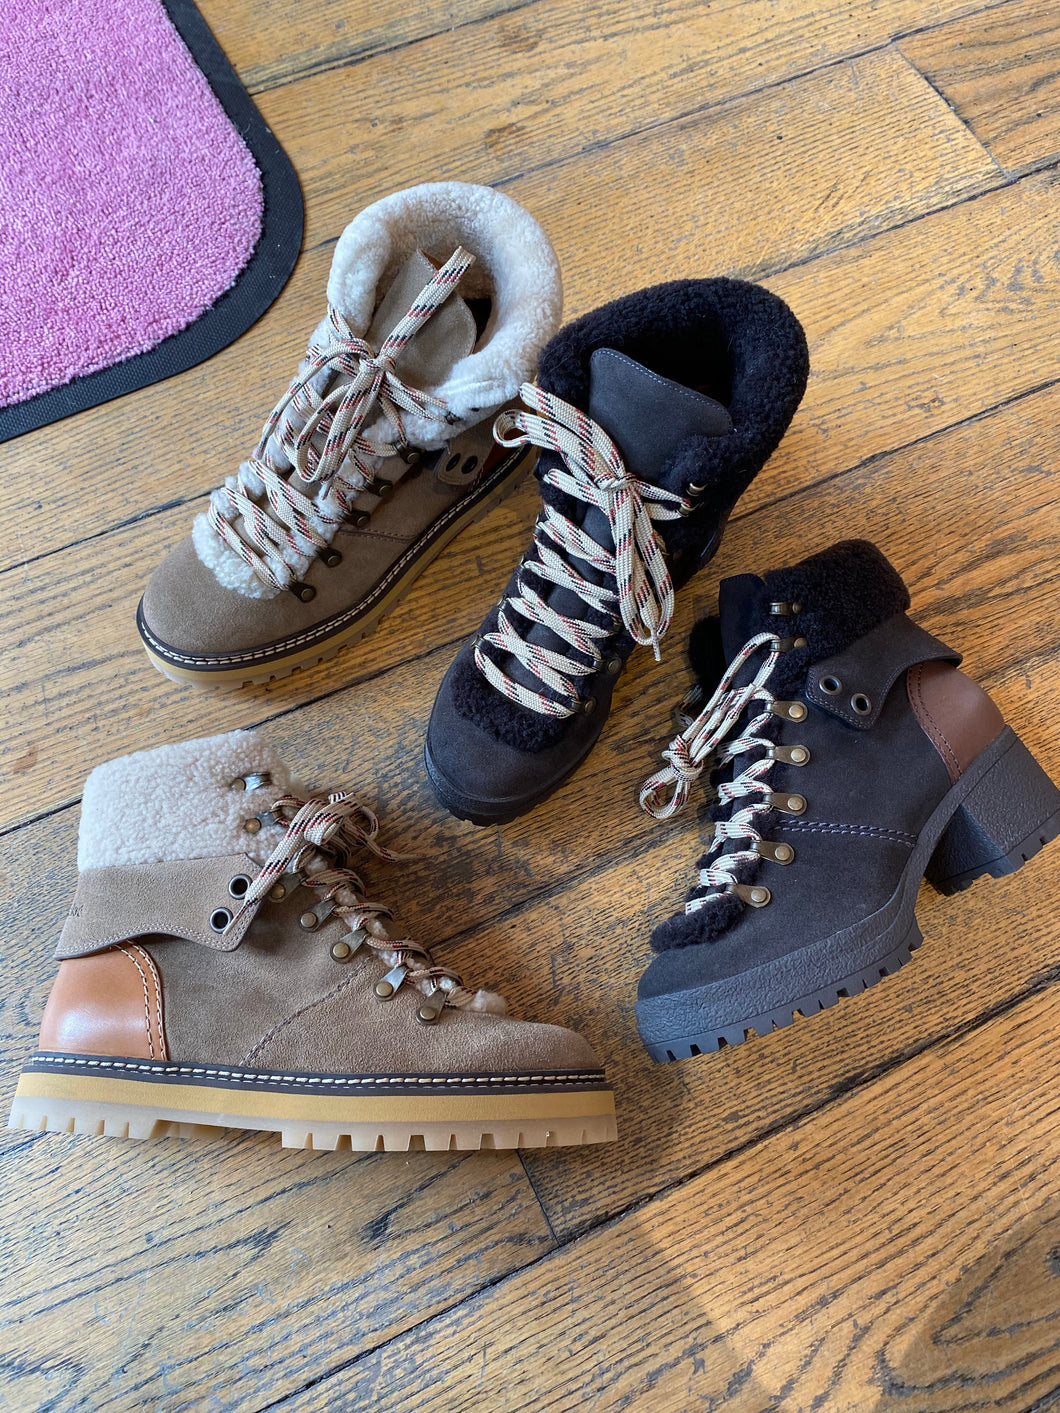 See Lace Up Alpine Boots